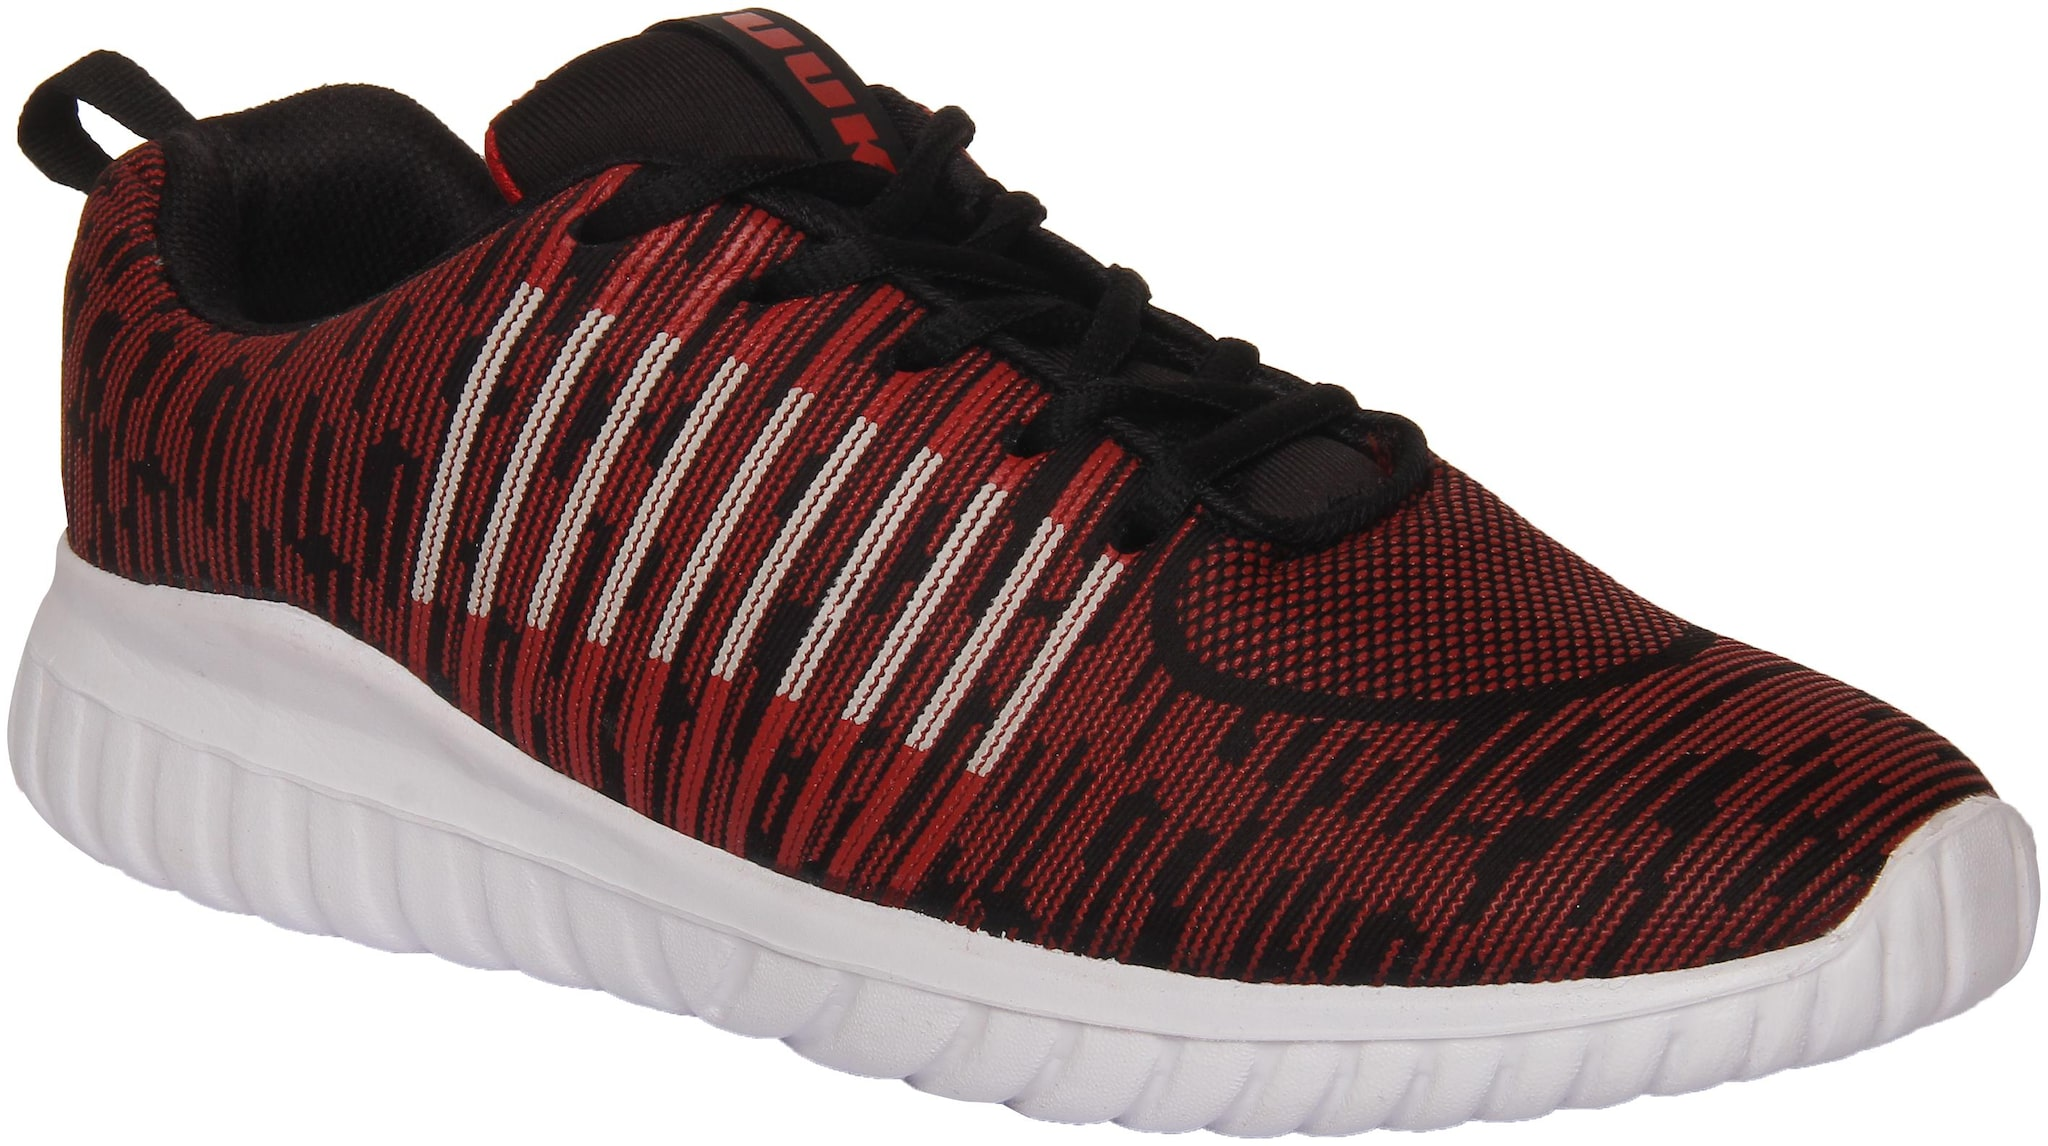 YUUKI Men Finley Running Shoes   Red   by Gurkirpa Lifestyle Company